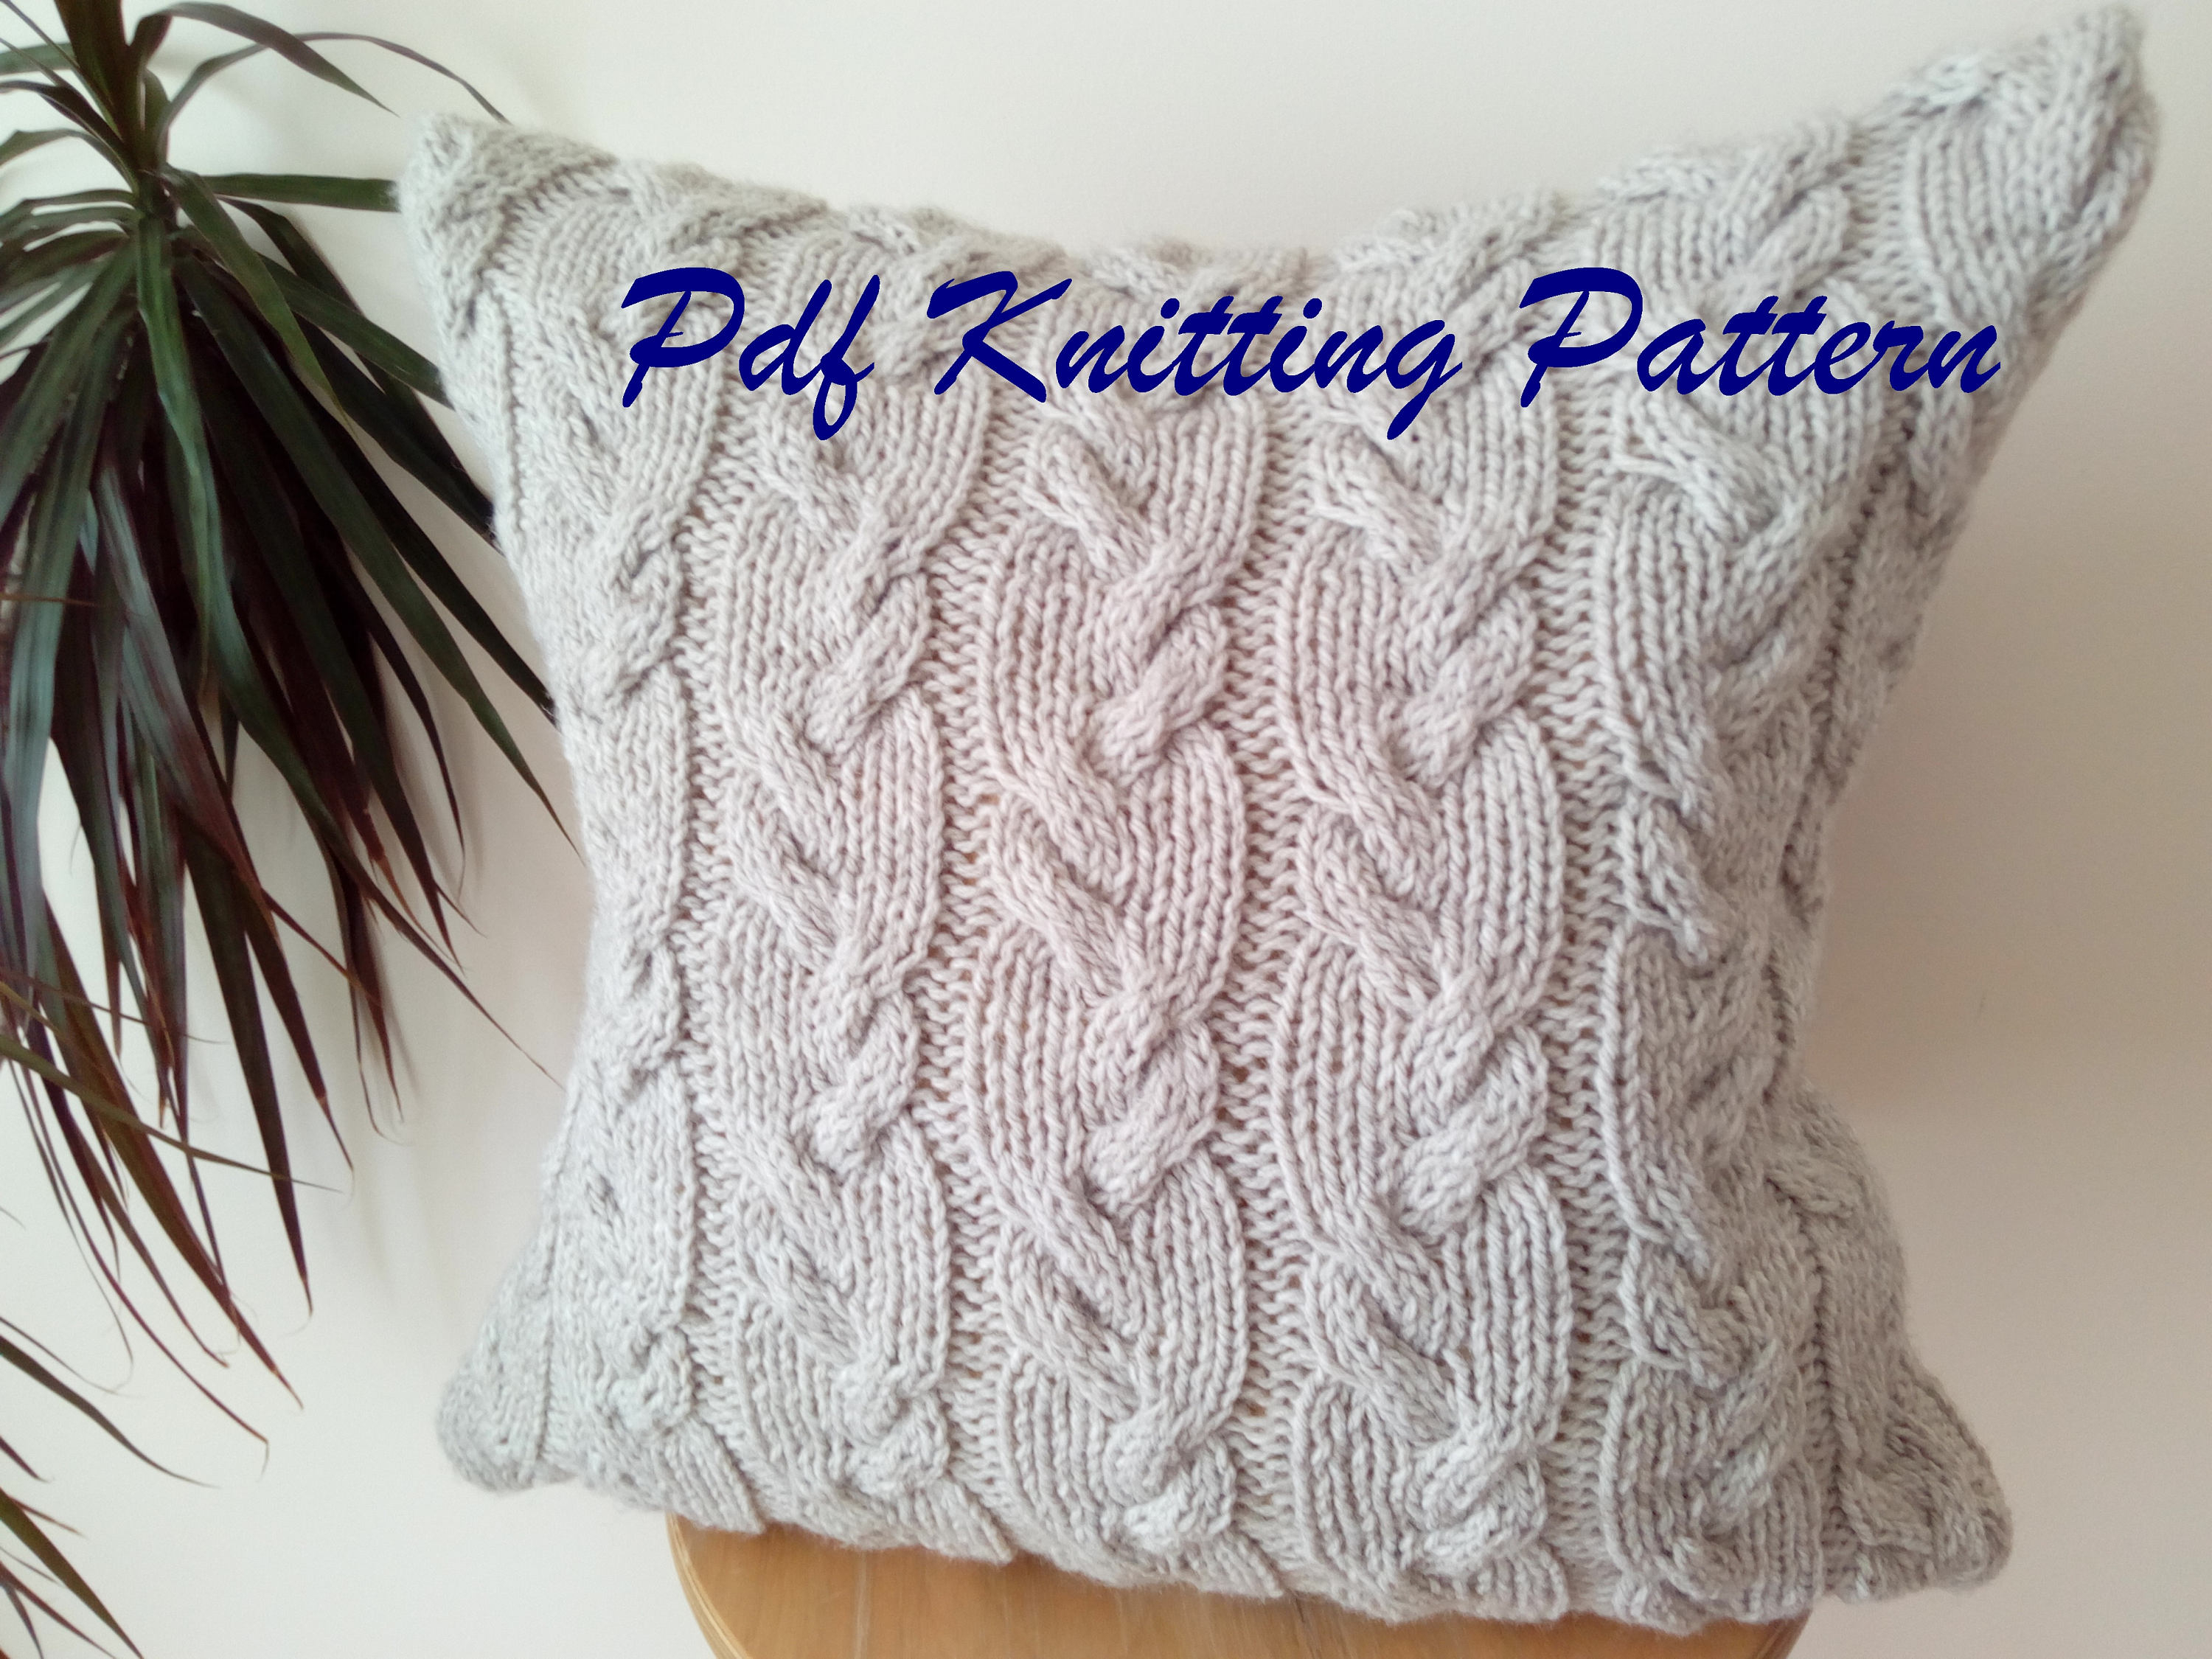 Knitting Pattern For Cushion Cover With Cables Pdf Knitting Pattern Cable Knit Aran Pillow Cushion Cover Wavy Cables 18 X 18 Button